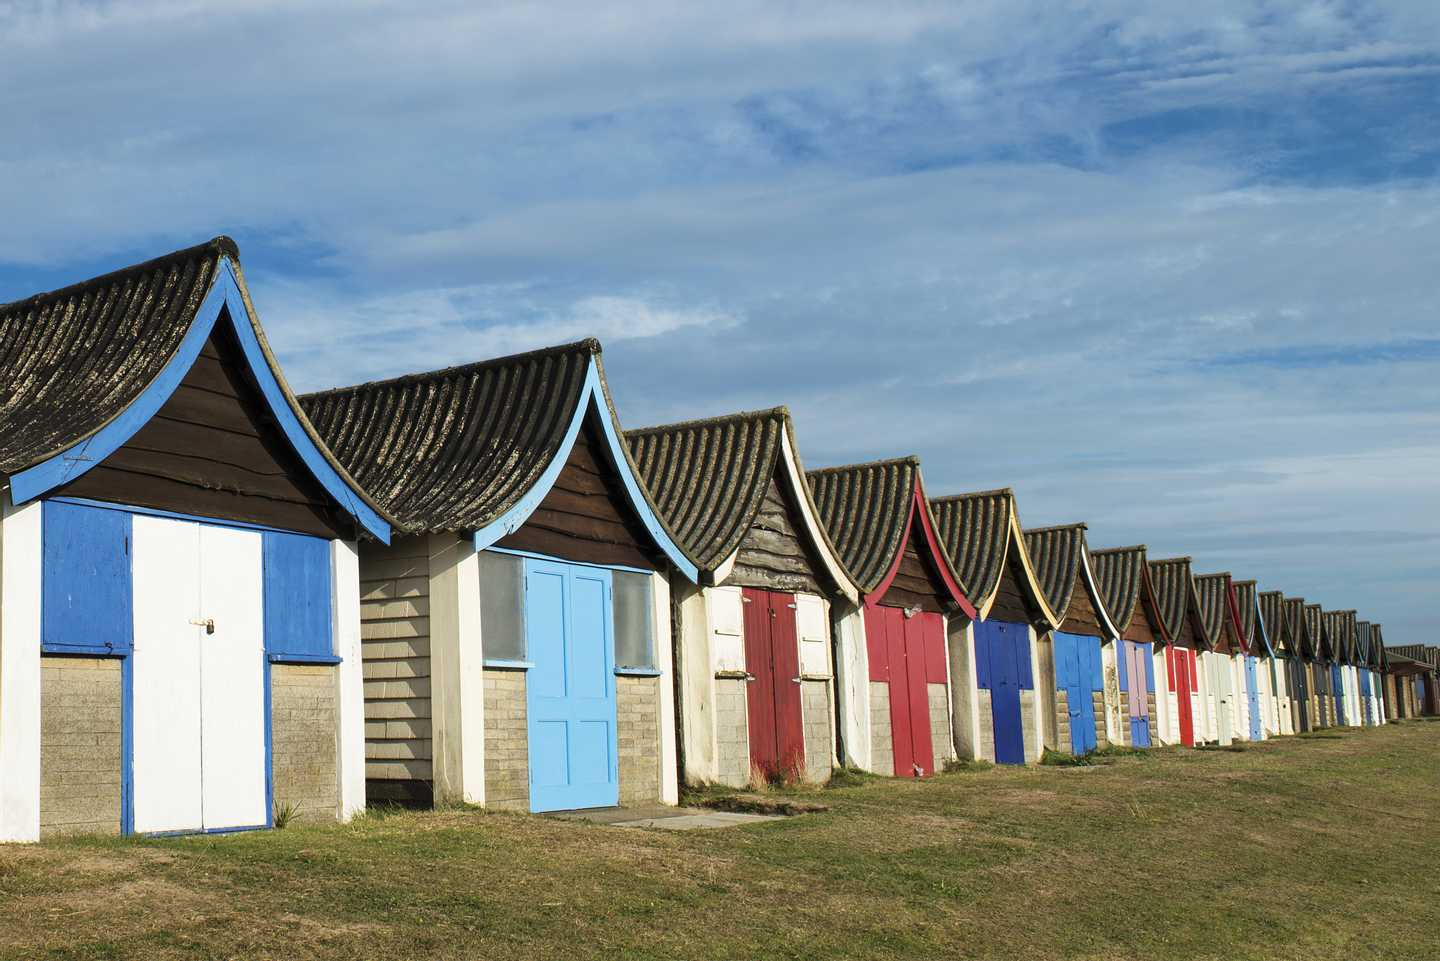 Mablethorpe Beach lined with beach huts